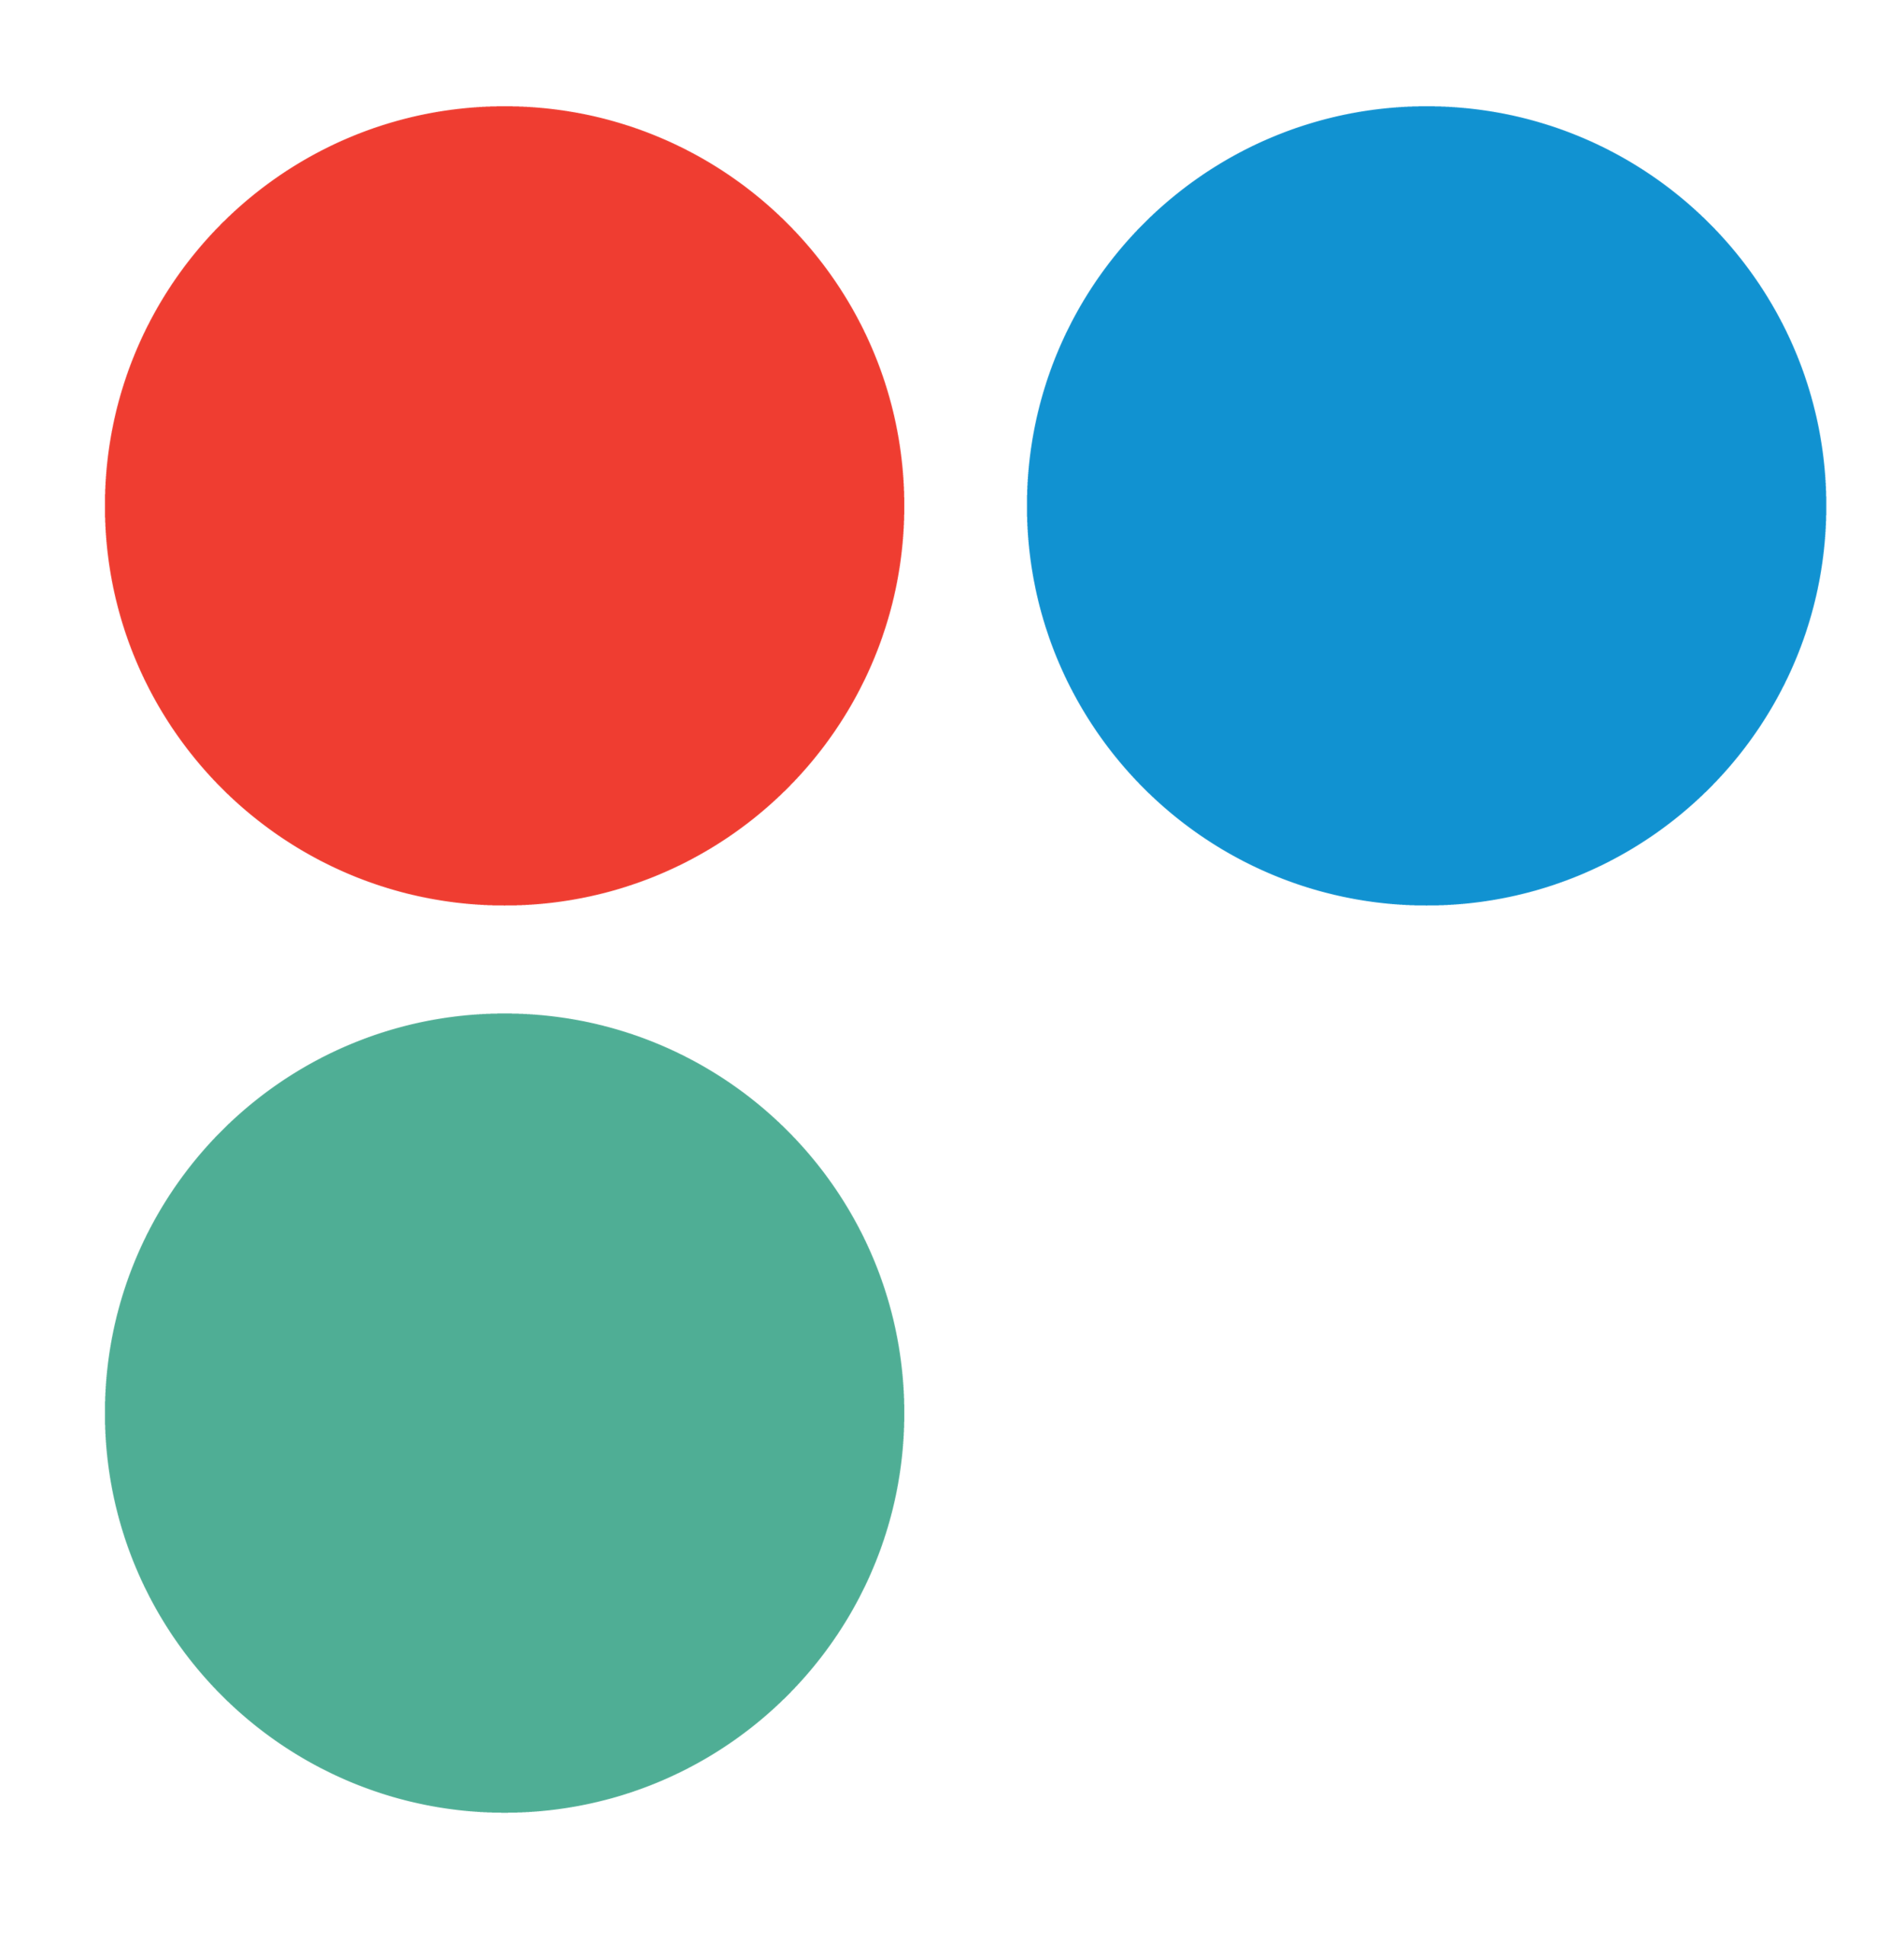 spot-relaunch-logo_4color-white.png